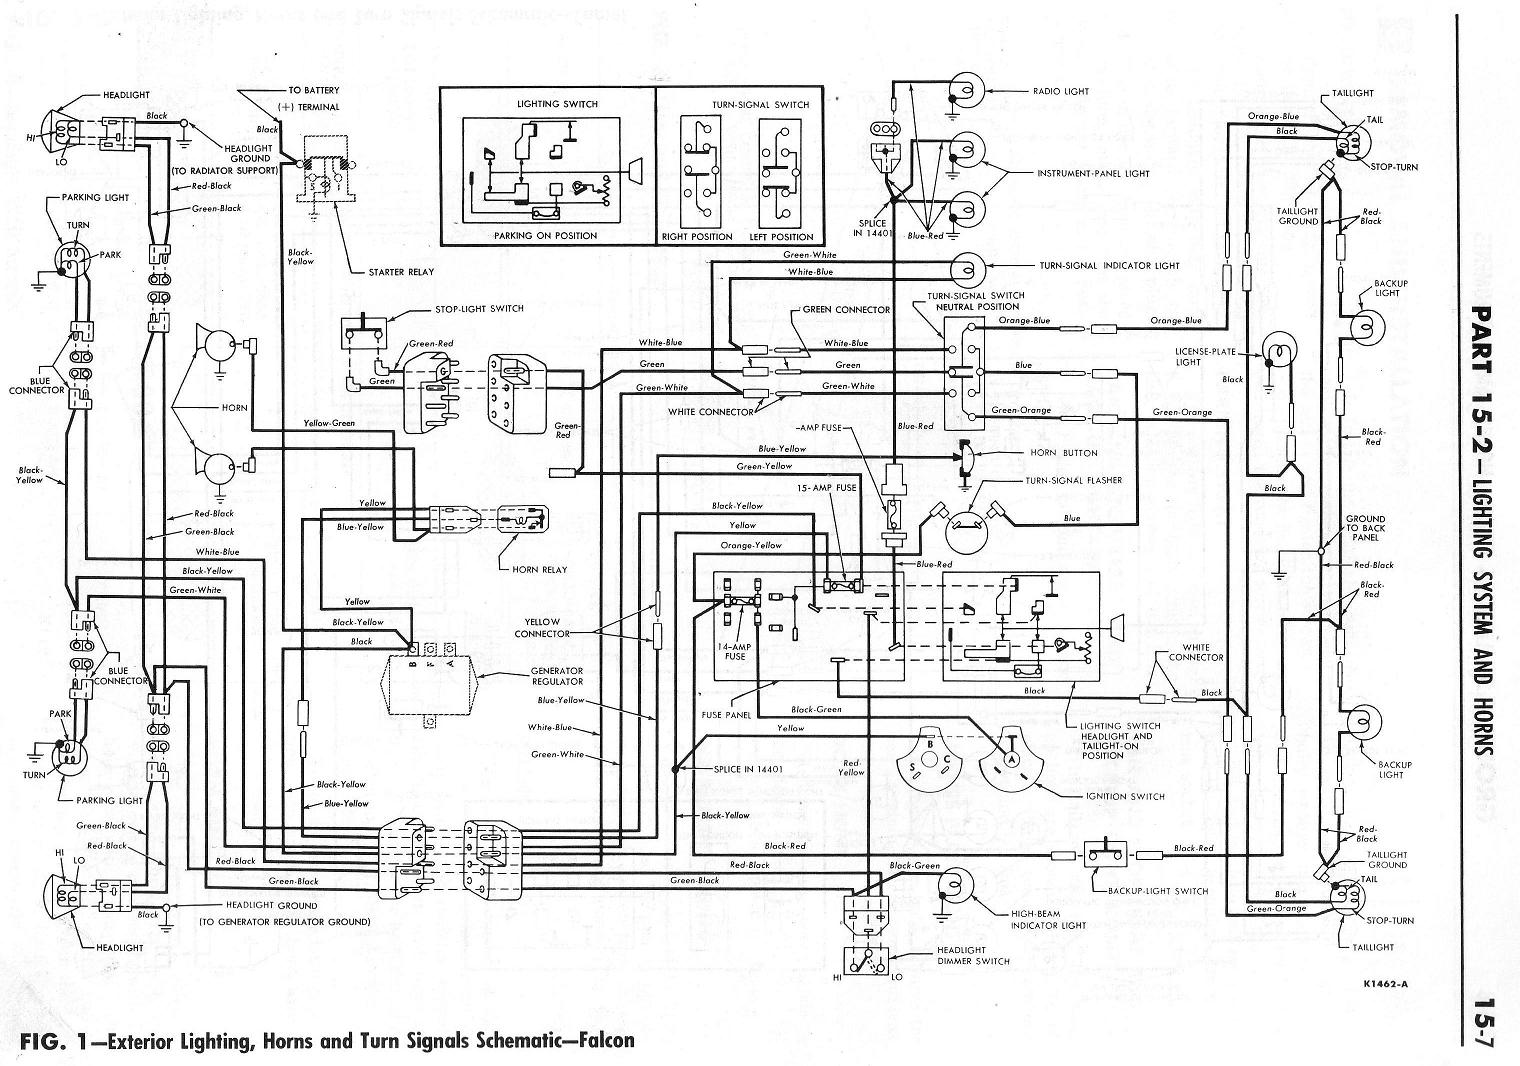 hight resolution of 1965 ford falcon ignition switch wiring electrical wiring diagrams 1964 buick skylark wiring diagram 1964 ford